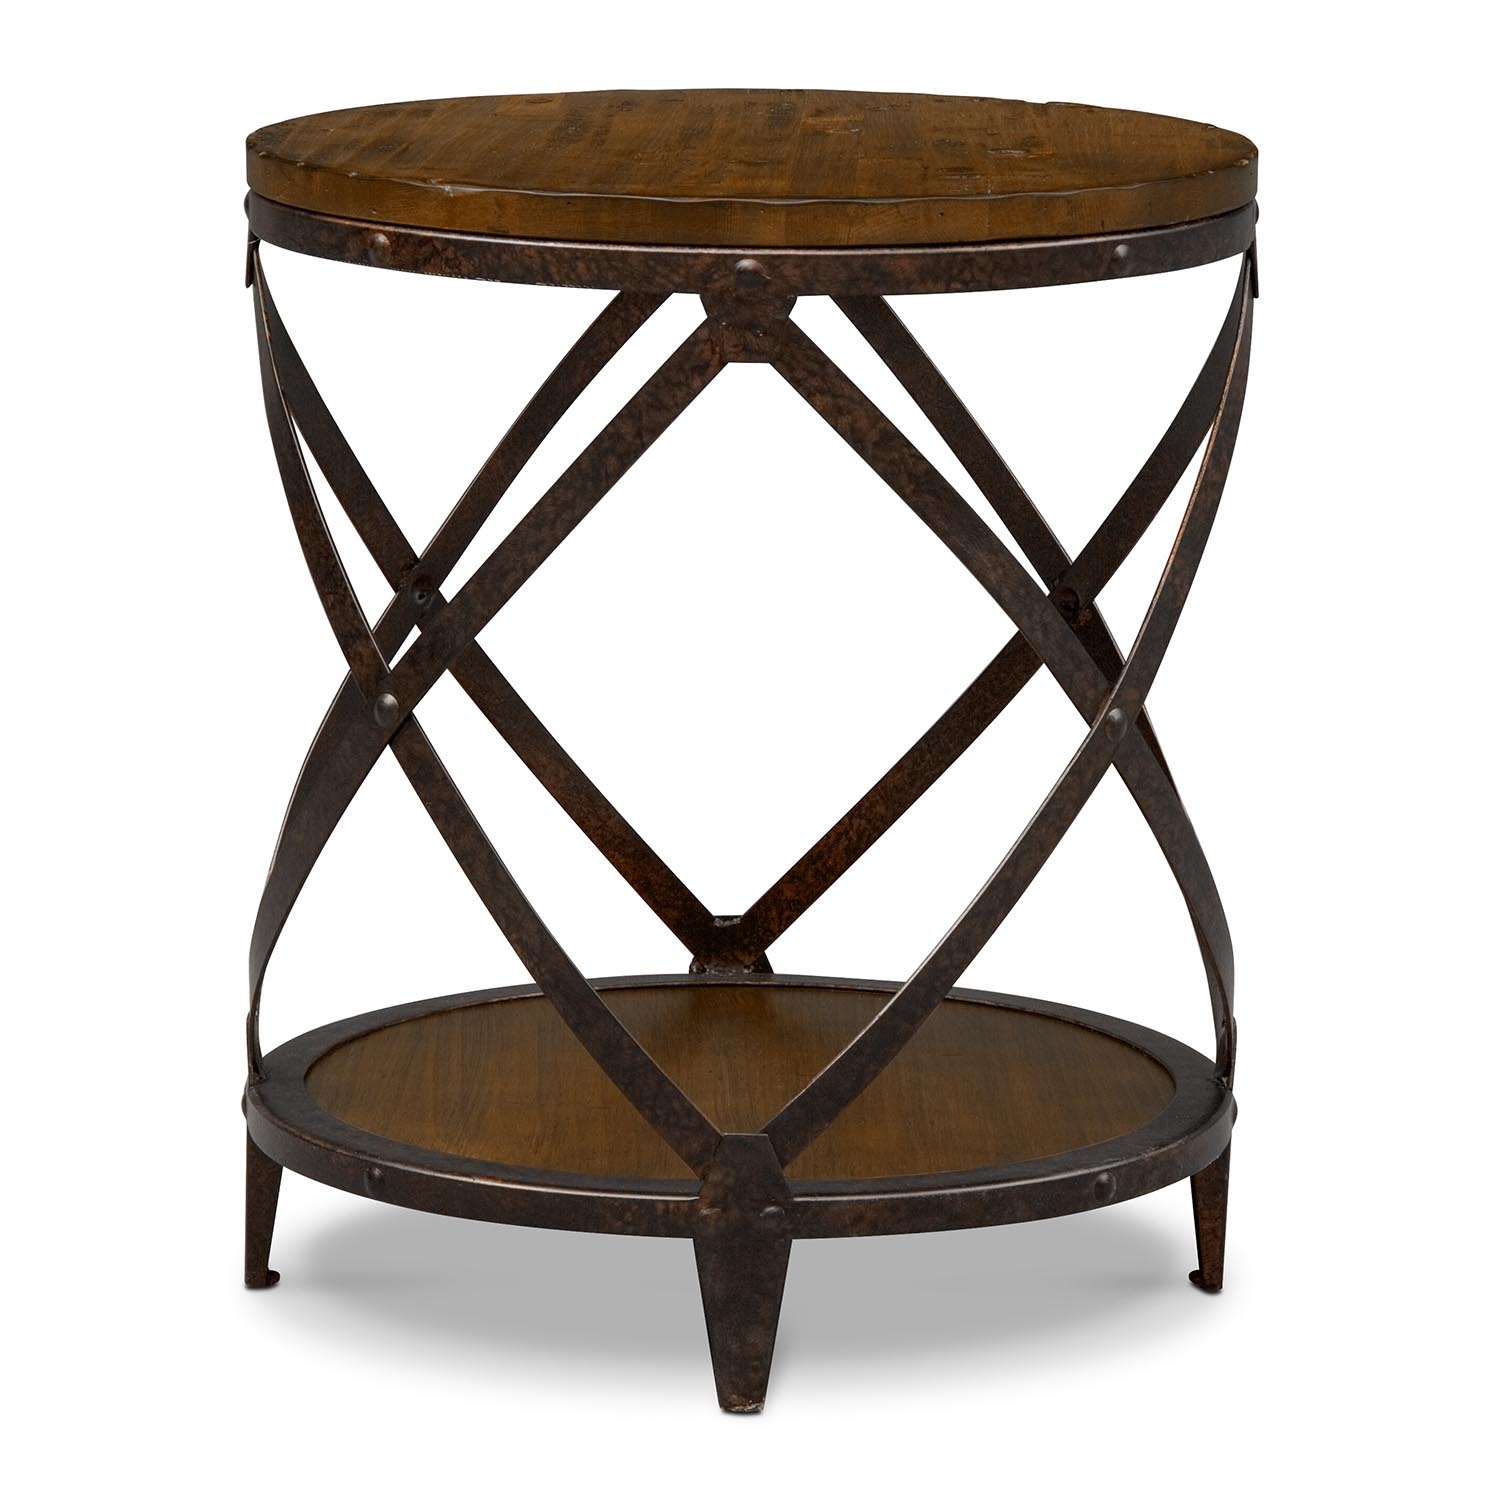 rustic round end table coffee design ideas designs ikea media stand android charger cable unfinished dresser cherry recycled wood fold camping small red side epoxy diy industrial